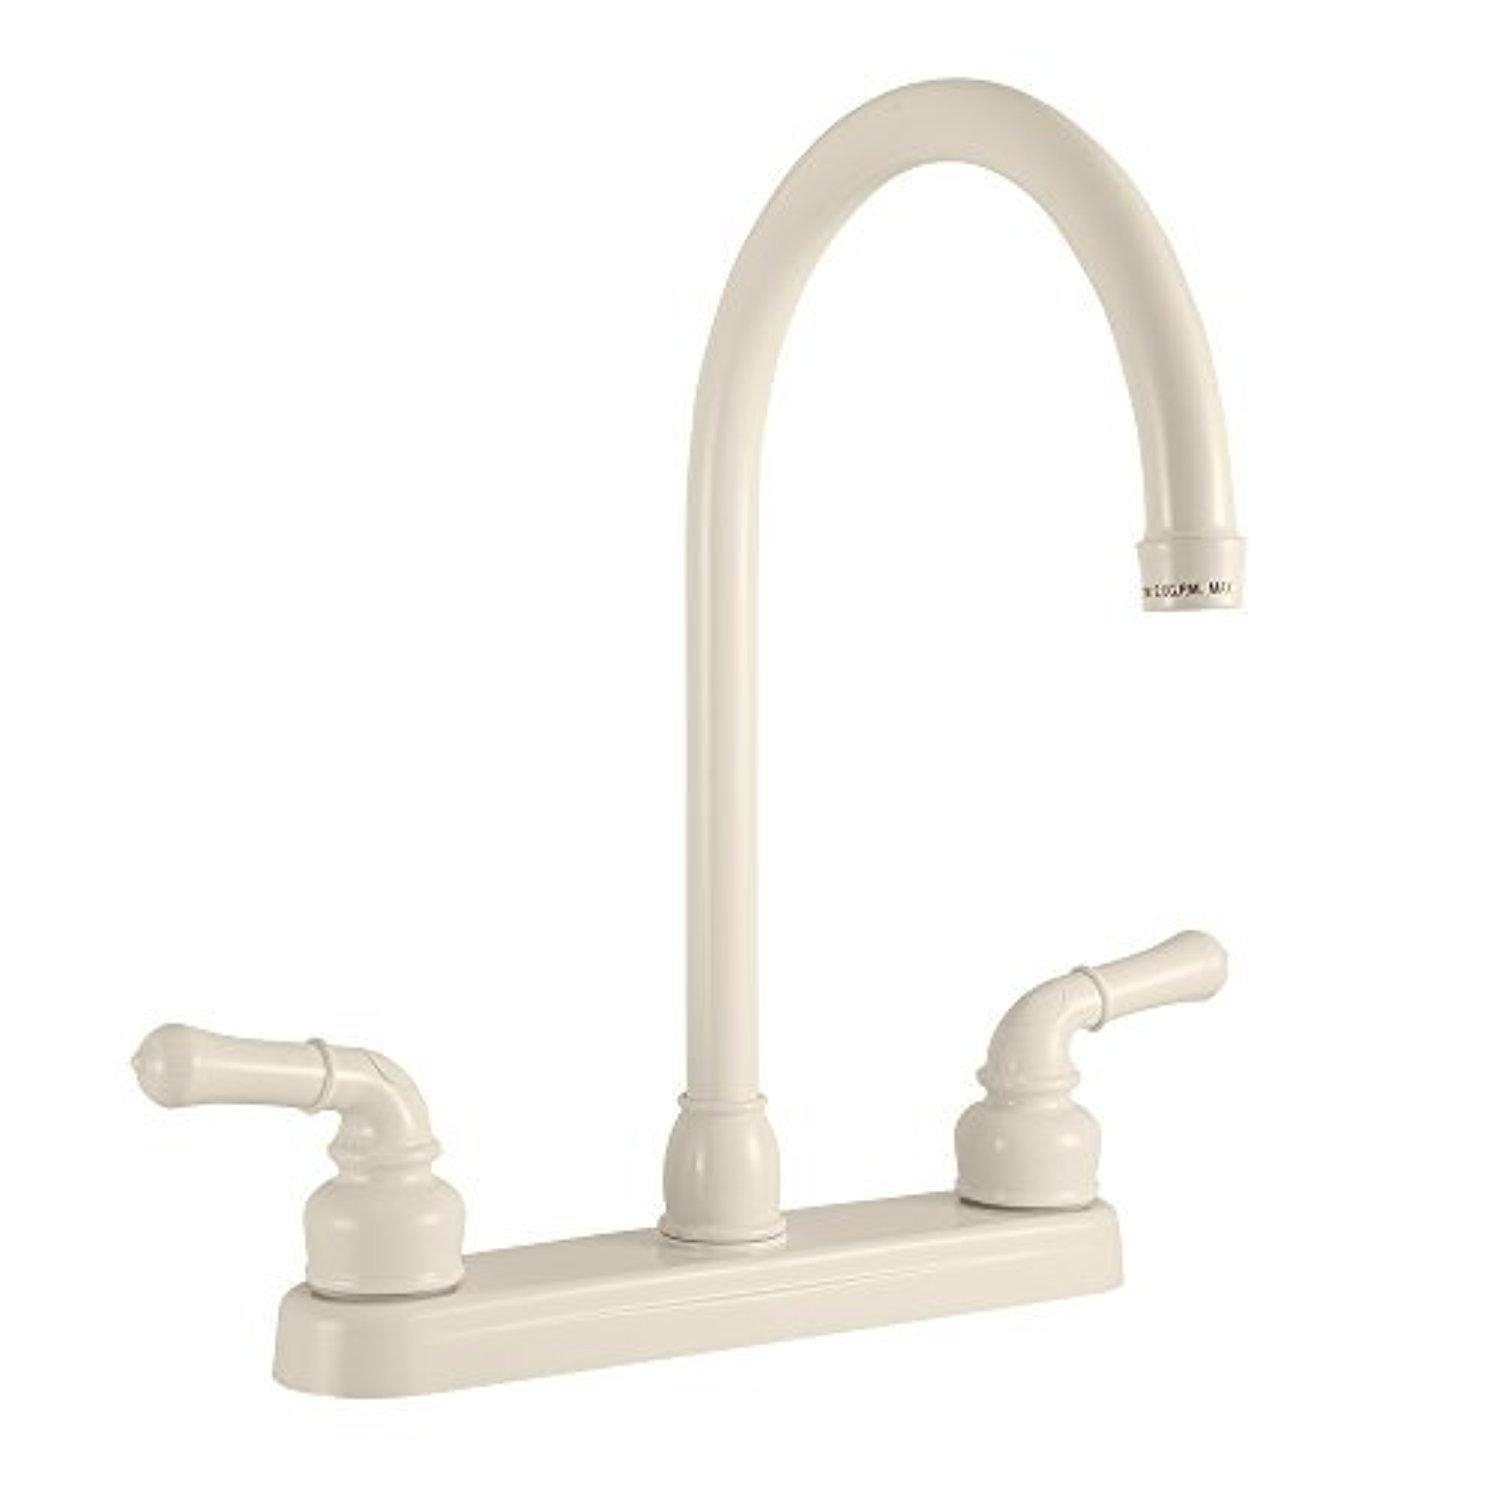 Ideas, corrego high rise kitchen faucet brushed finish corrego high rise kitchen faucet brushed finish design corrego kitchen faucet corrego kitchen faucet fix leaky 1500 x 1500  .